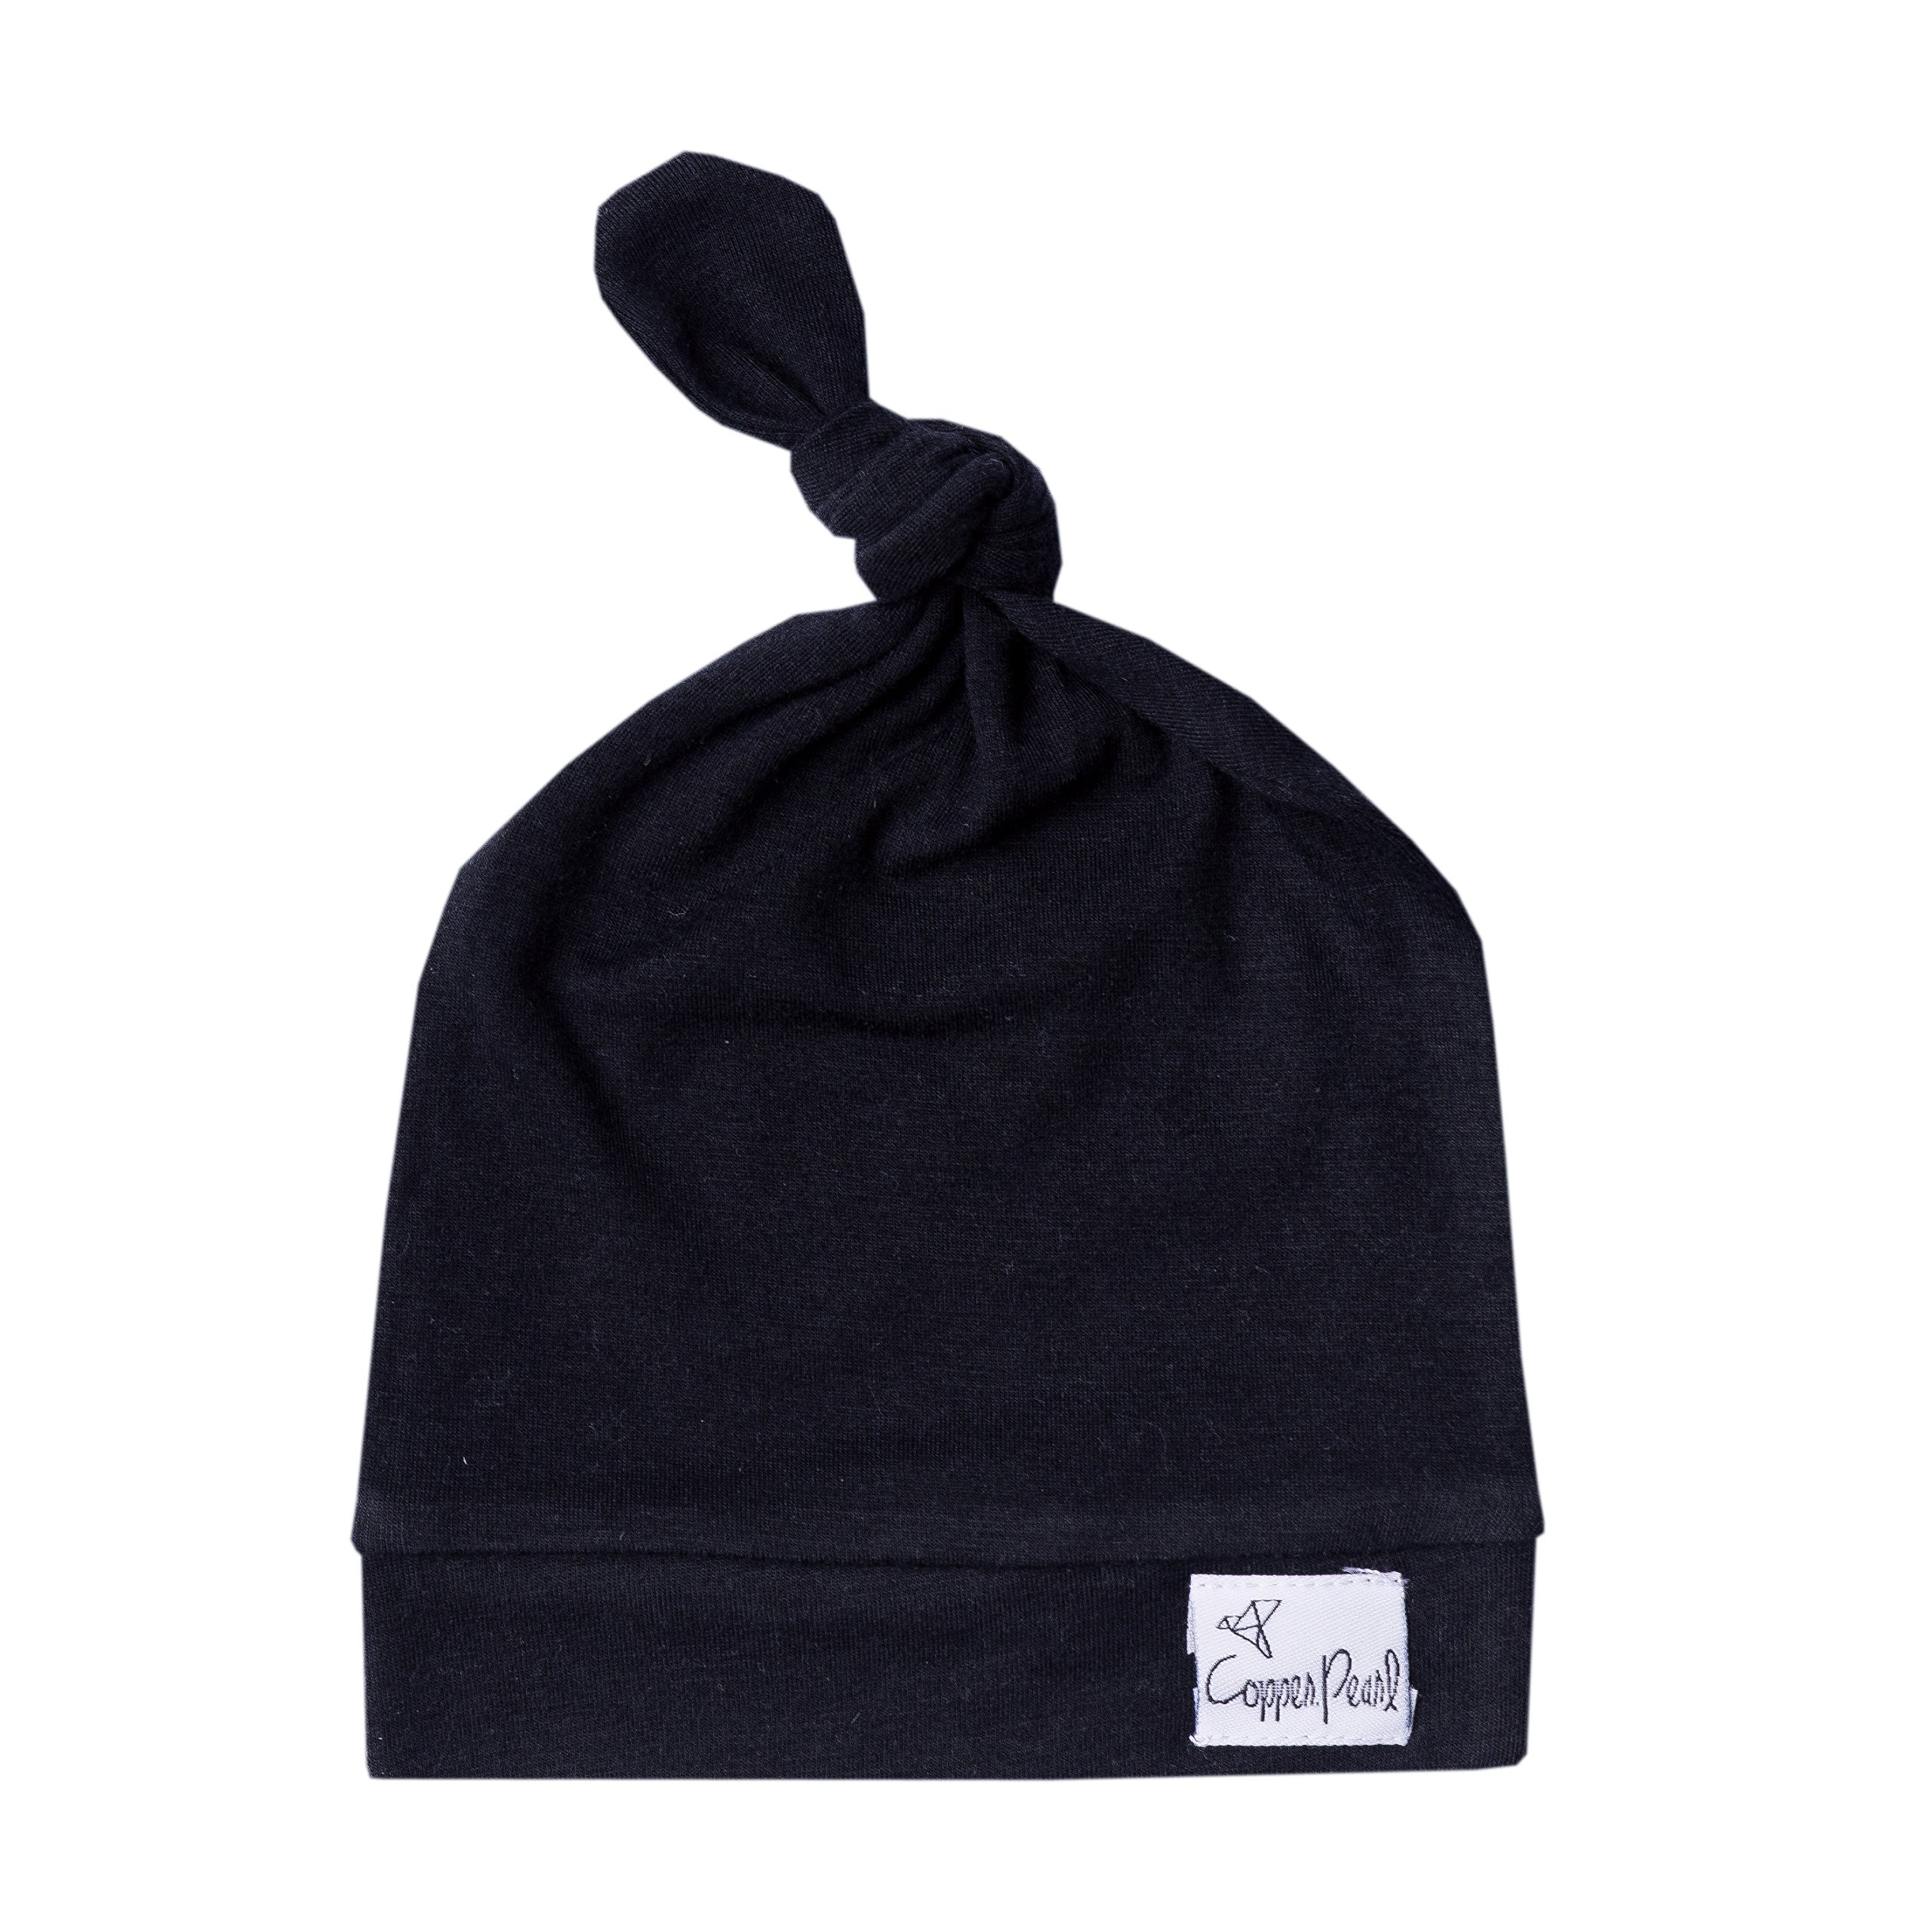 2f846d67697 Baby Beanie Hat Top Knot Stretchy Soft for Boy or Girl